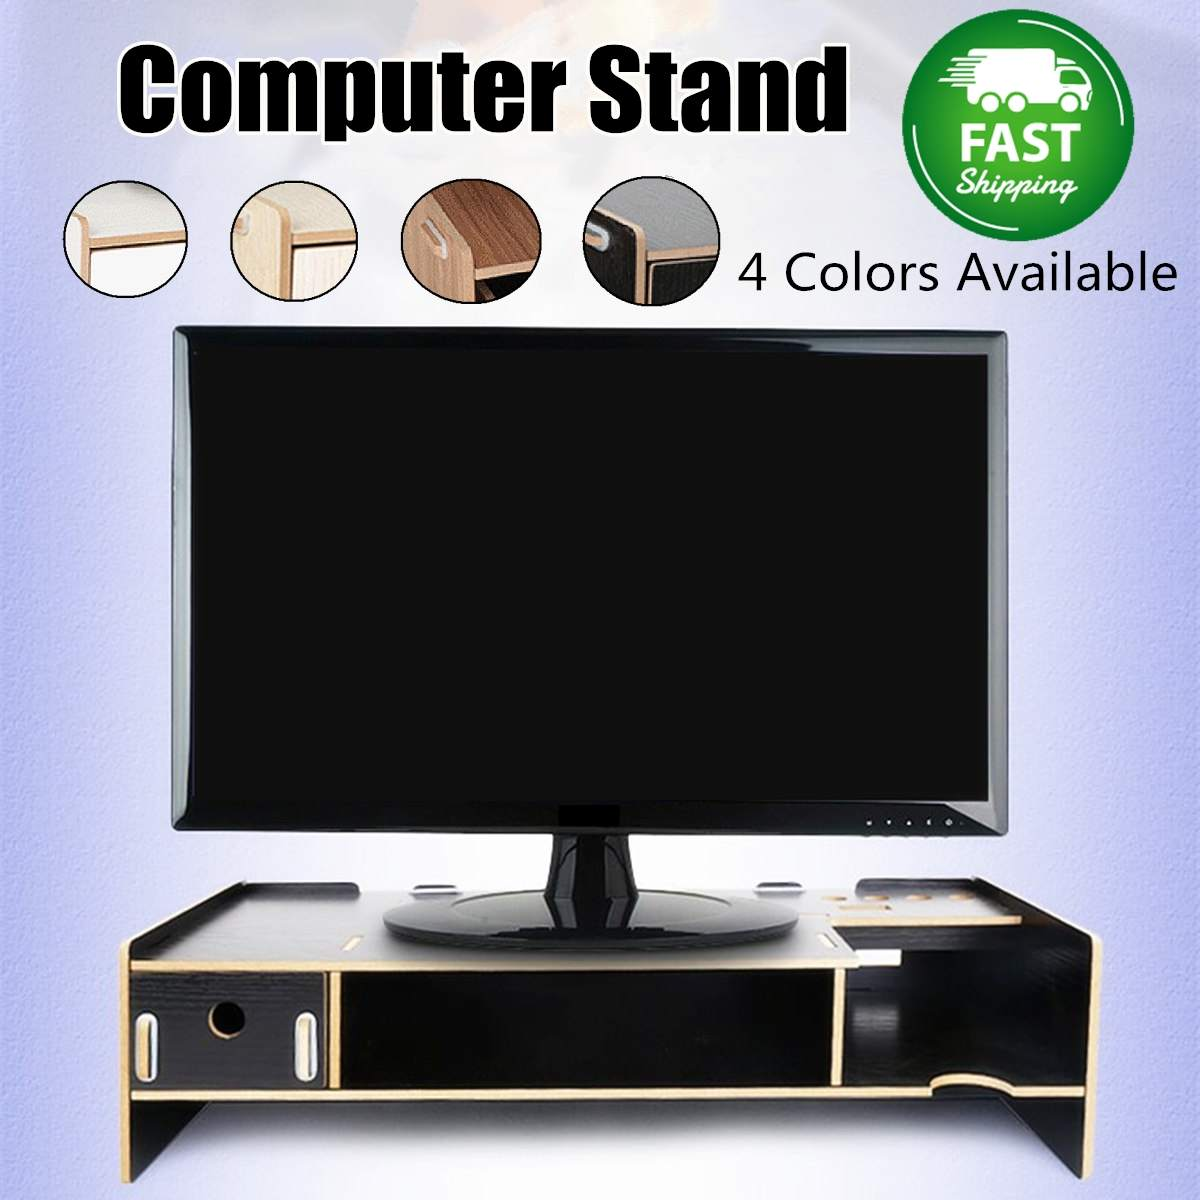 Desktop Monitor Stand Computer Screen Riser Wooden Shelf Plinth Strong Laptop Stand Desk Holder For Notebook TV MultifunctionDesktop Monitor Stand Computer Screen Riser Wooden Shelf Plinth Strong Laptop Stand Desk Holder For Notebook TV Multifunction